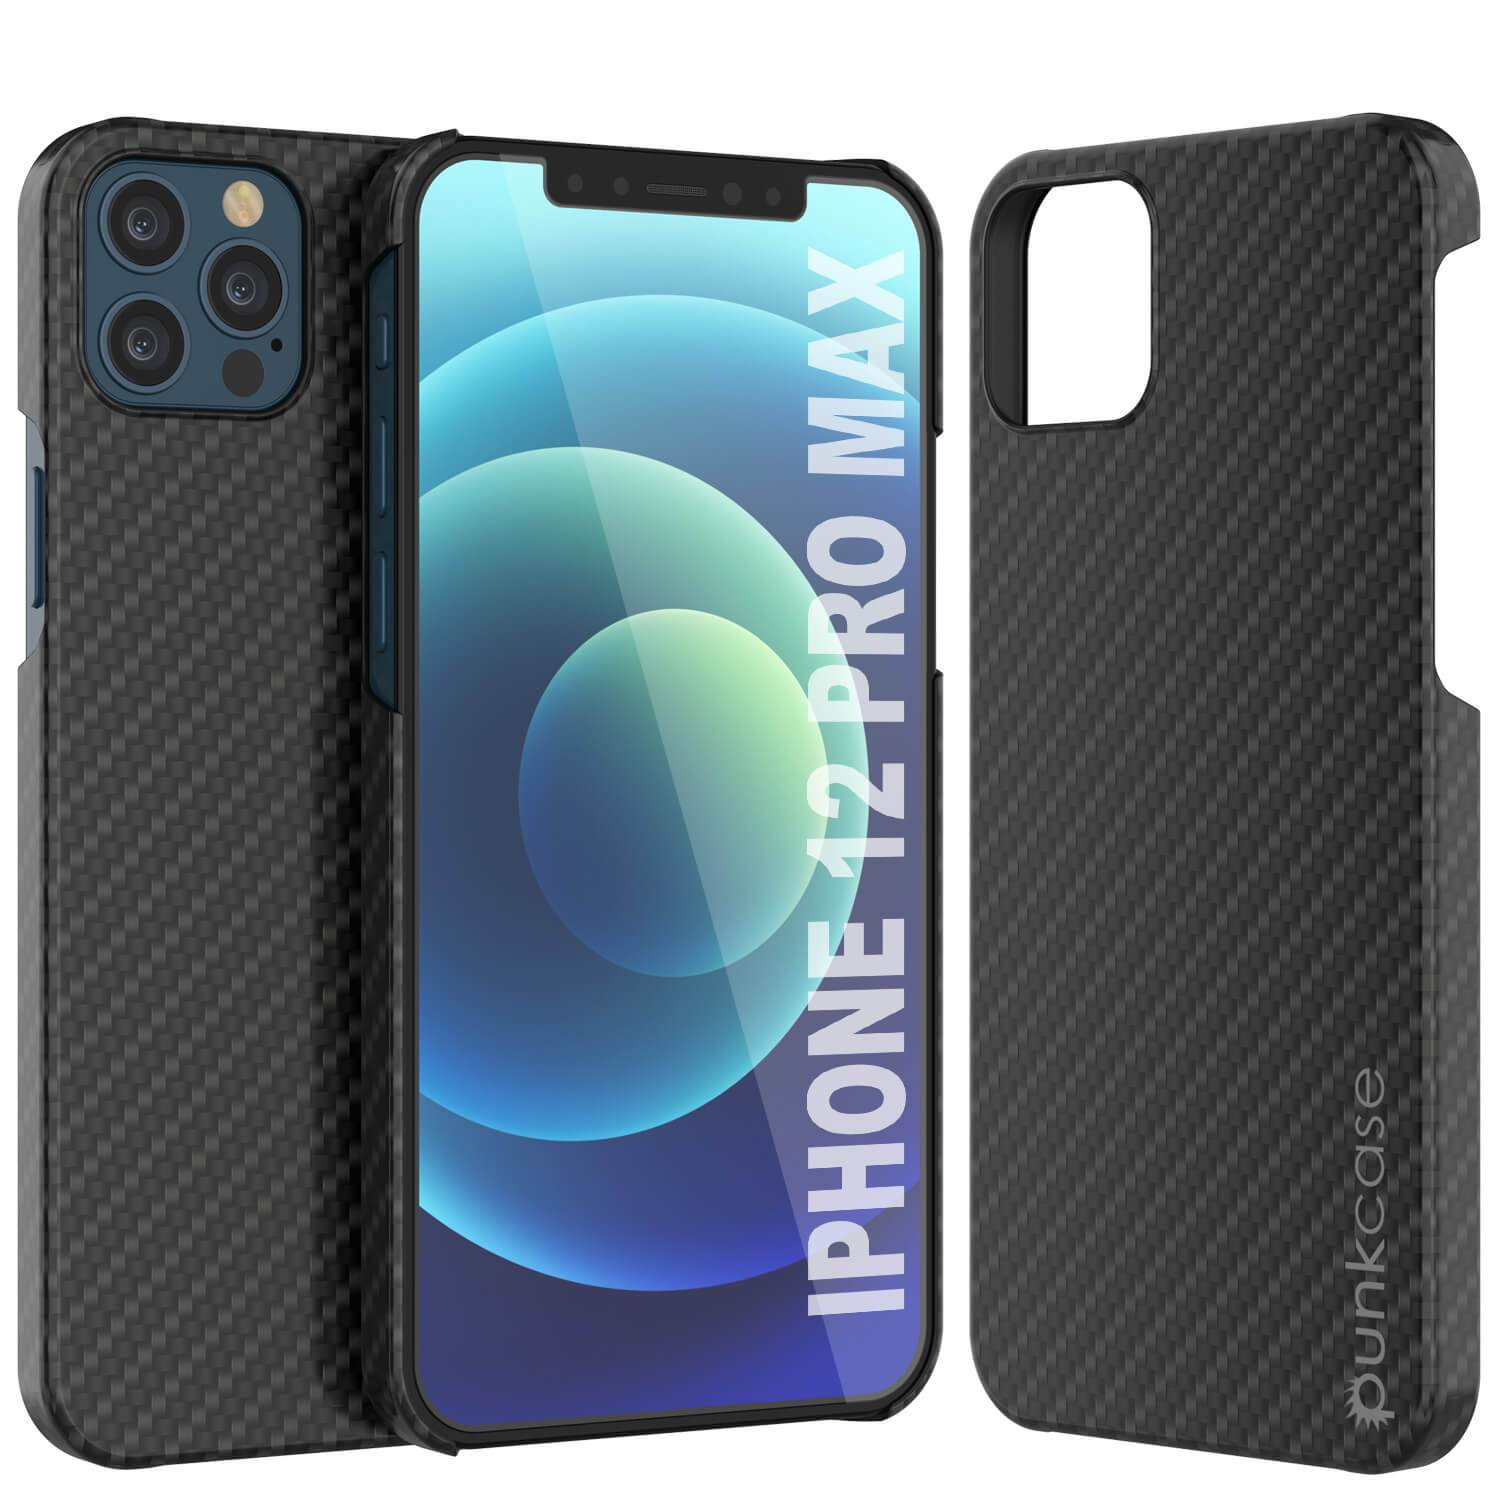 iPhone 12 Pro Max Case, Punkcase CarbonShield, Heavy Duty & Ultra Thin 2 Piece Dual Layer [shockproof]